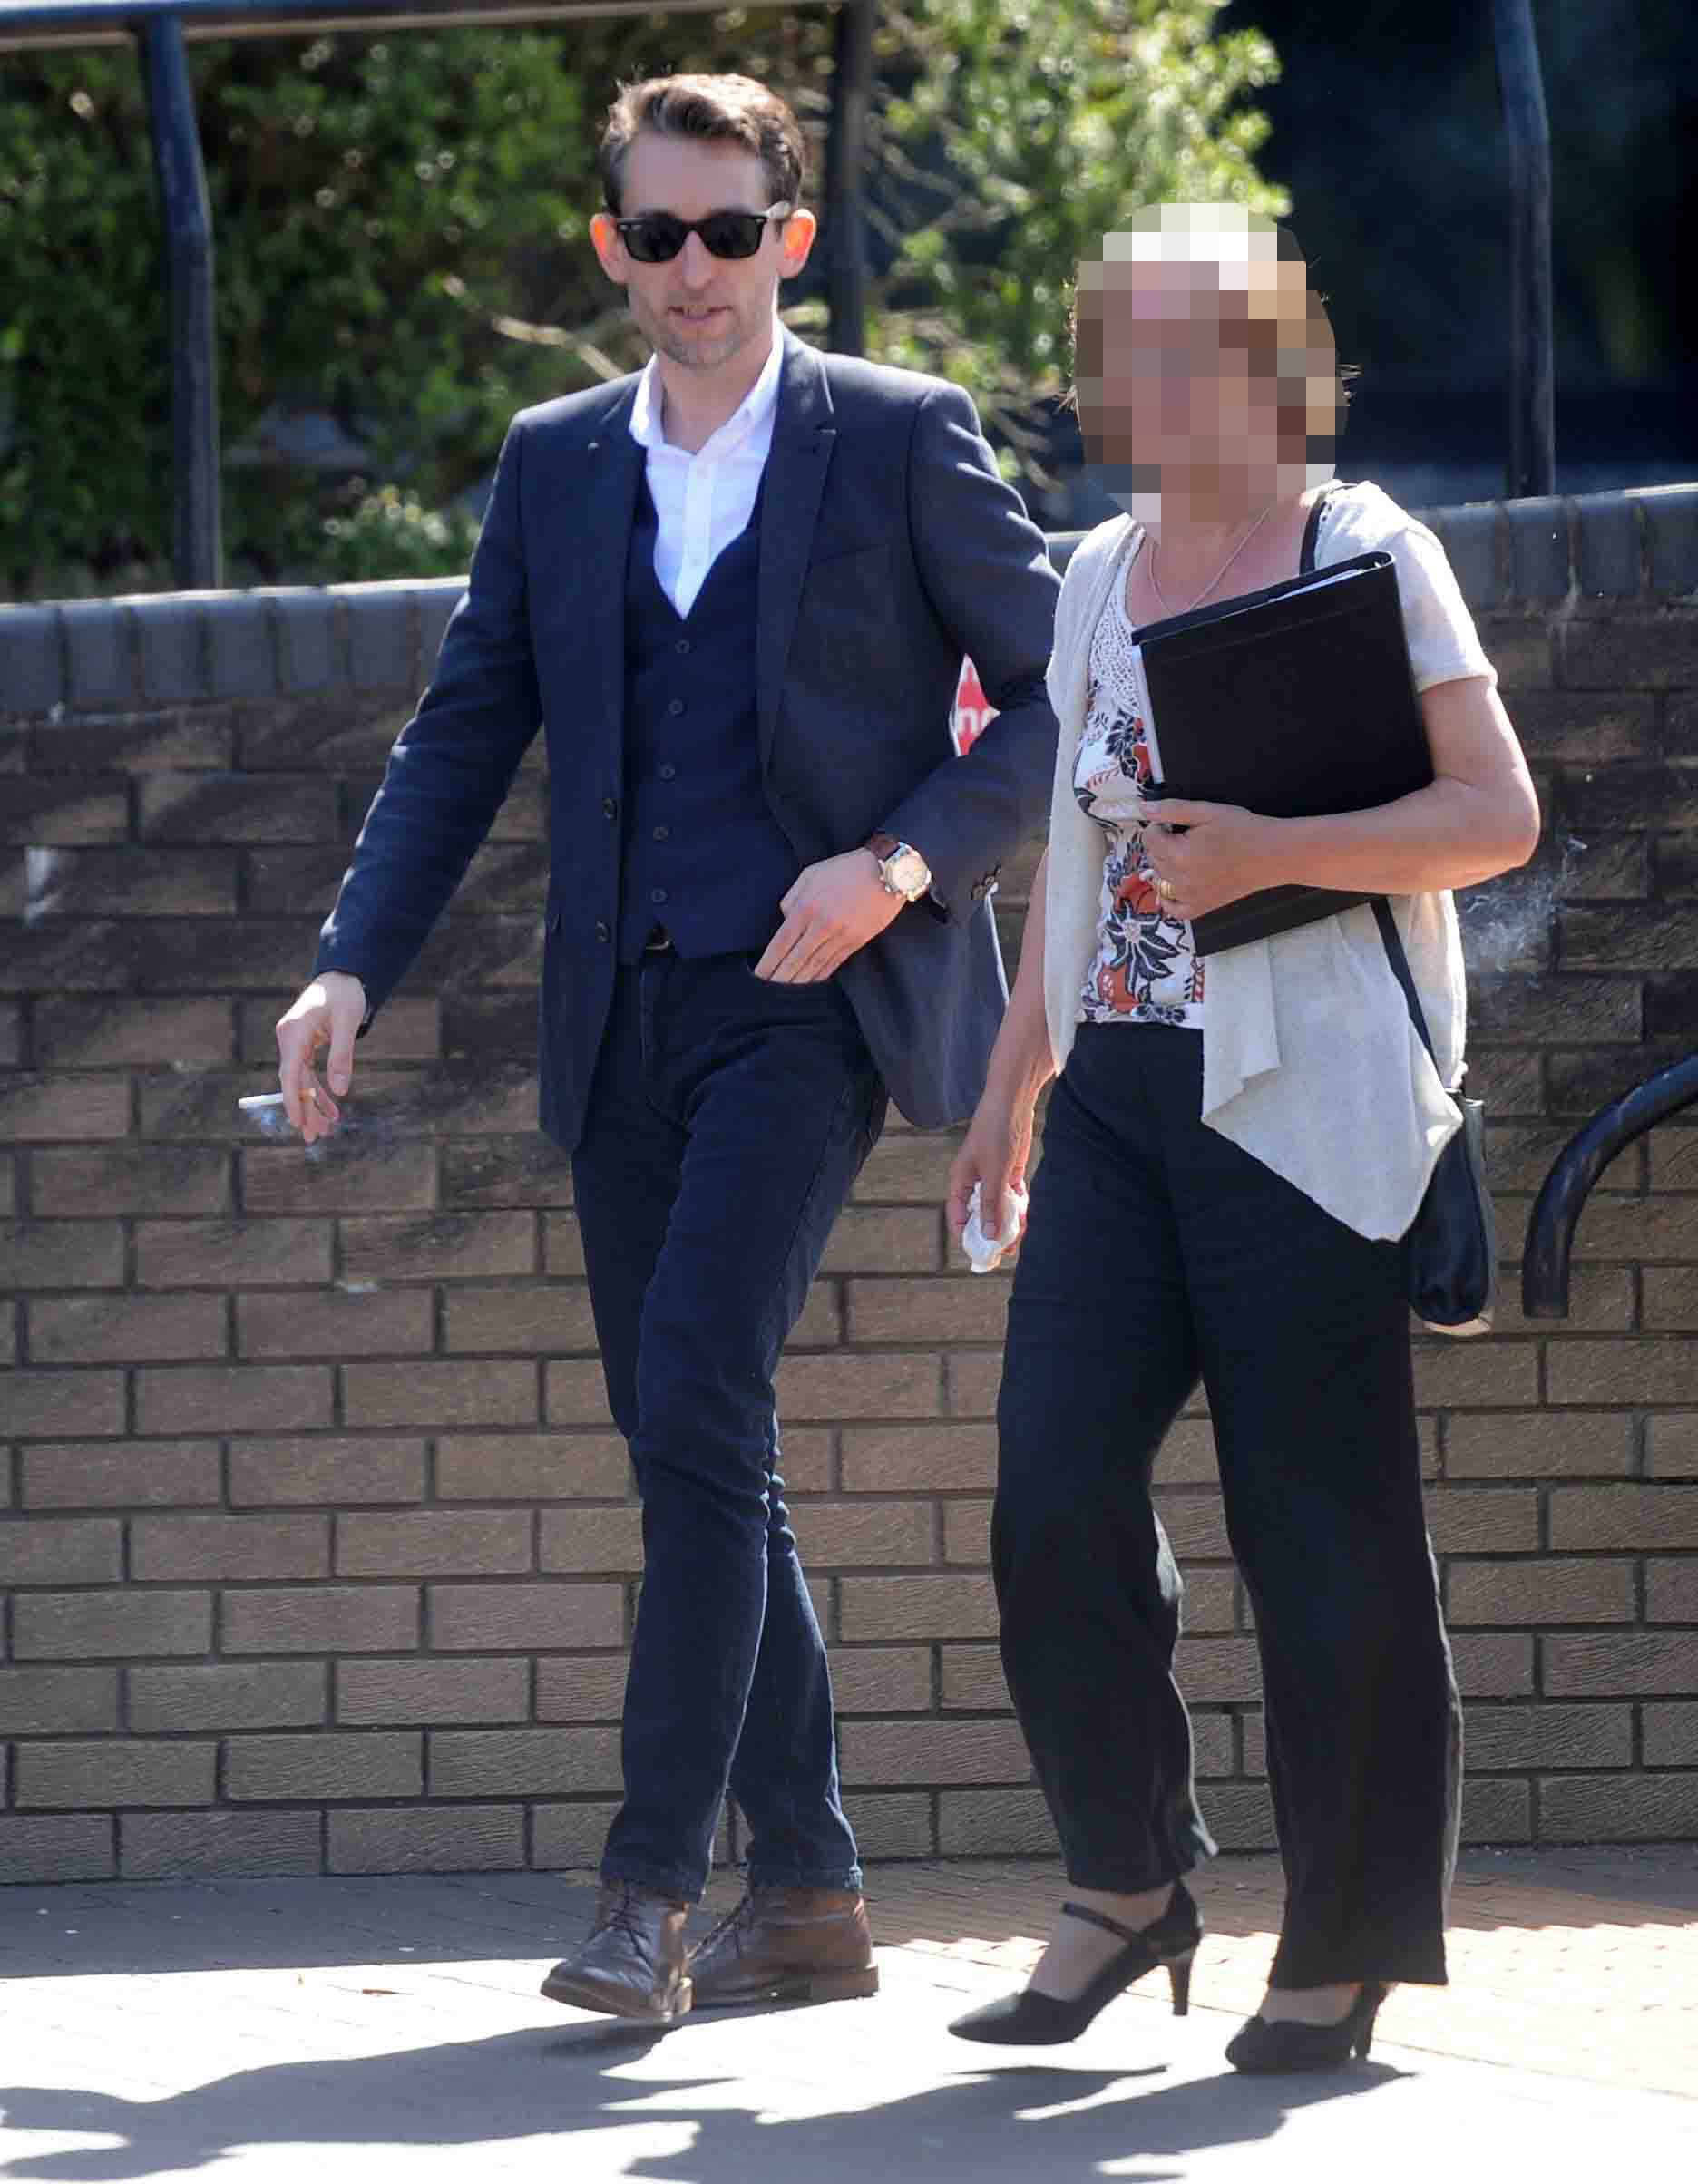 A woman being stalked by her ex-partner awoke to find him standing at the foot of her bed, a court heard. James Robert Pitchers, 36, used an app to track his former partner?s movements, visited her place of work and sent her numerous text messages between February and May this year. The campaign of harassment began following the end of the couple?s 13-year relationship, Teesside Magistrates Court was told. In the incident in February, Pitcher?s ex-partner awoke at 7am and found him standing at the foot of her bed. Teesside magistrates court, Middlesbrough. Suit man is James Robert Pitchers, 36, of Stockton, admitted stalking his ex-partner.